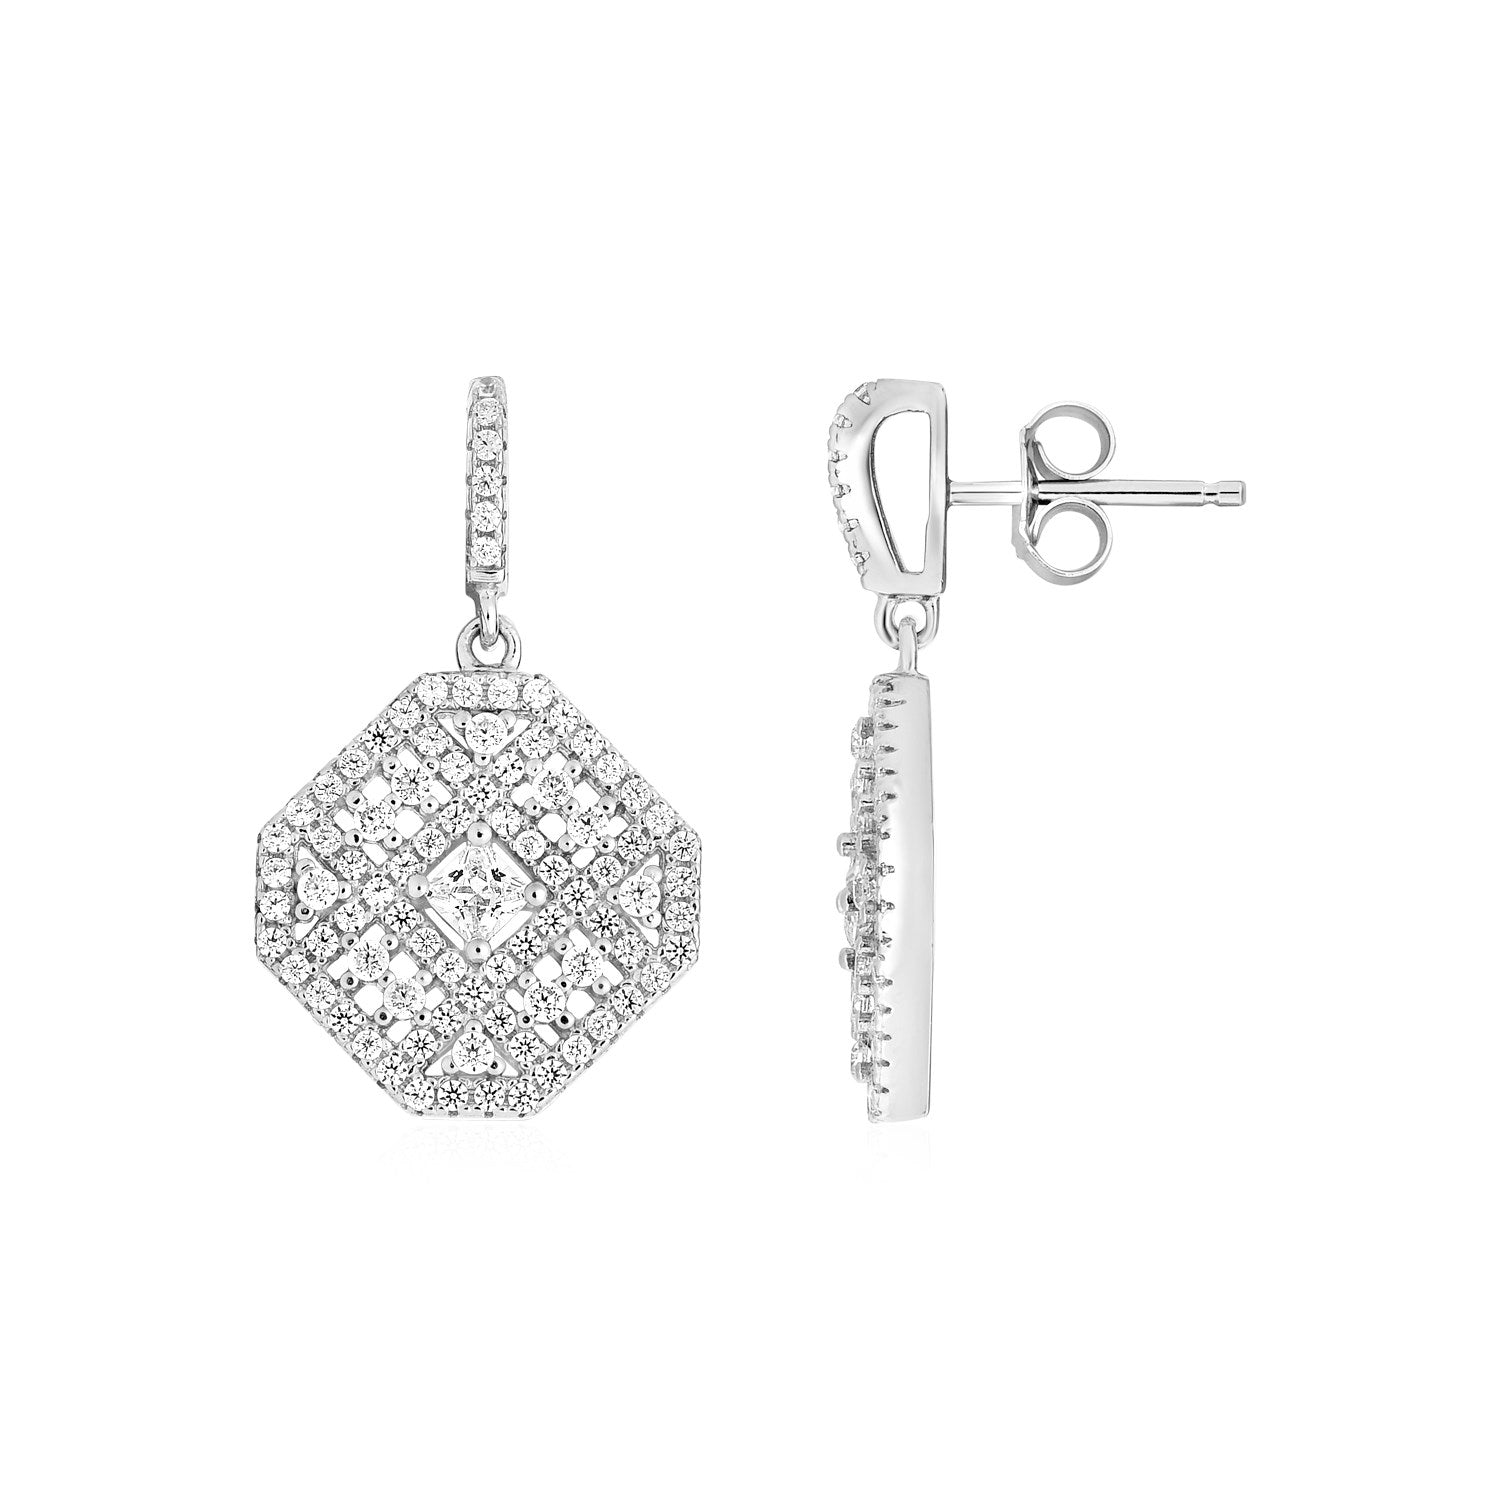 Square Motif Earrings with Cubic Zirconia in Sterling Silver